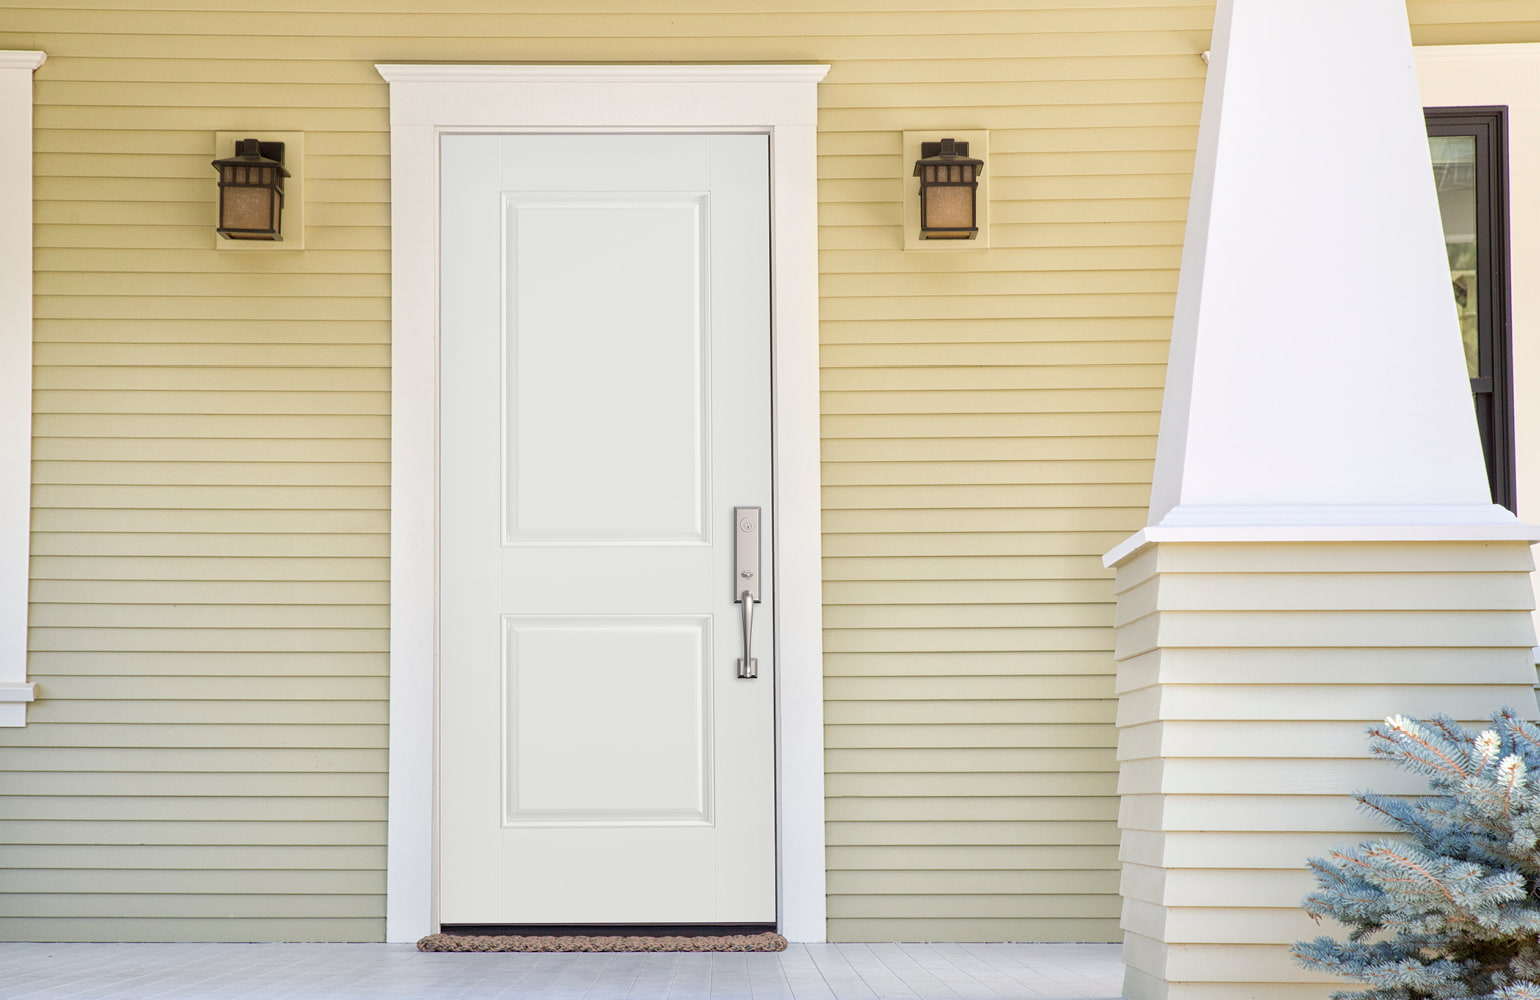 blue solid steel entry door with white trim on a light blue painted home